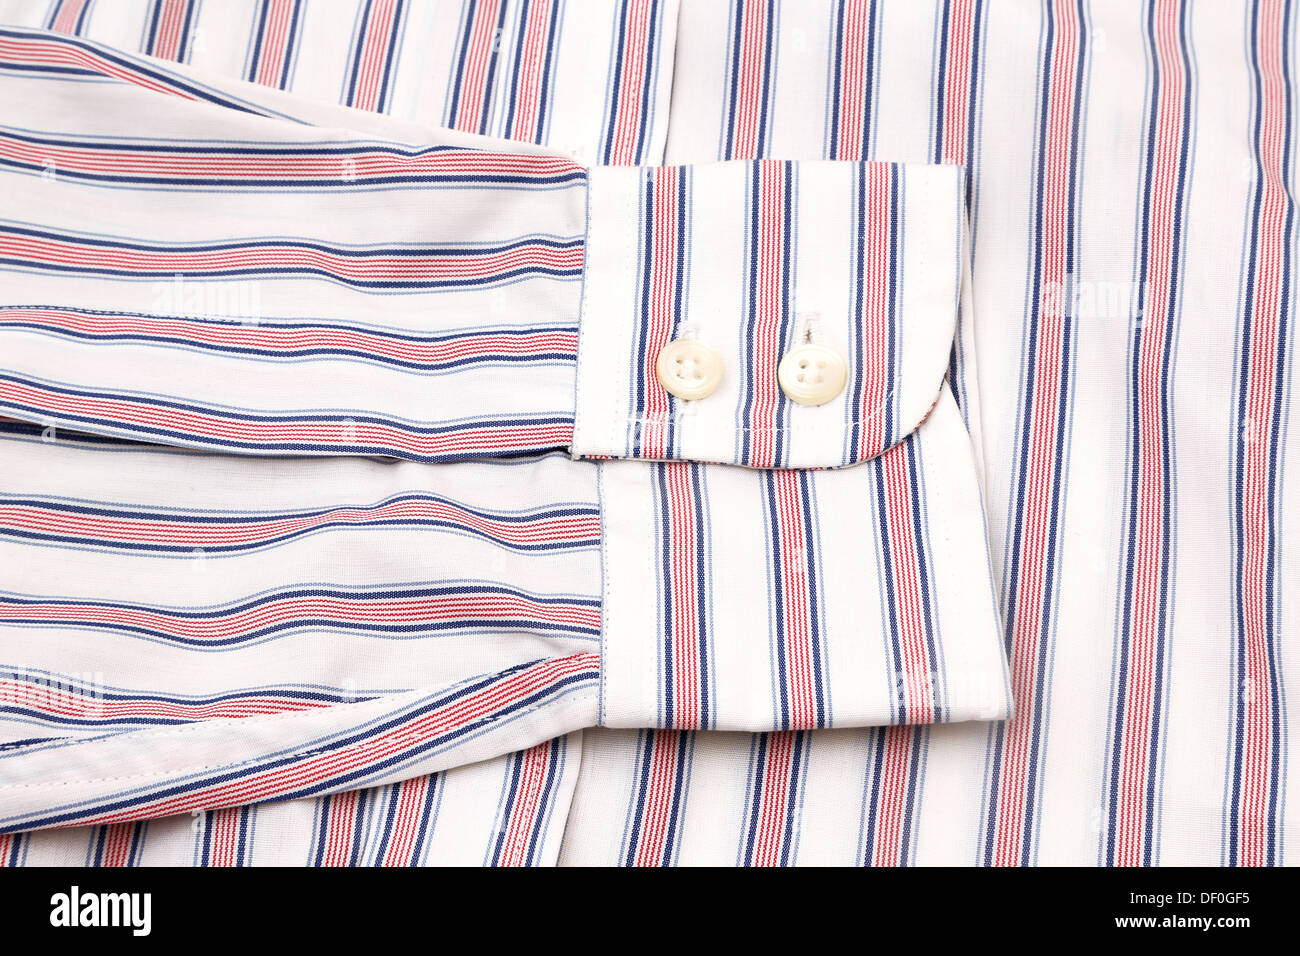 Red, White And Blue Striped Shirt Cuff Of Sleeve - Stock Image